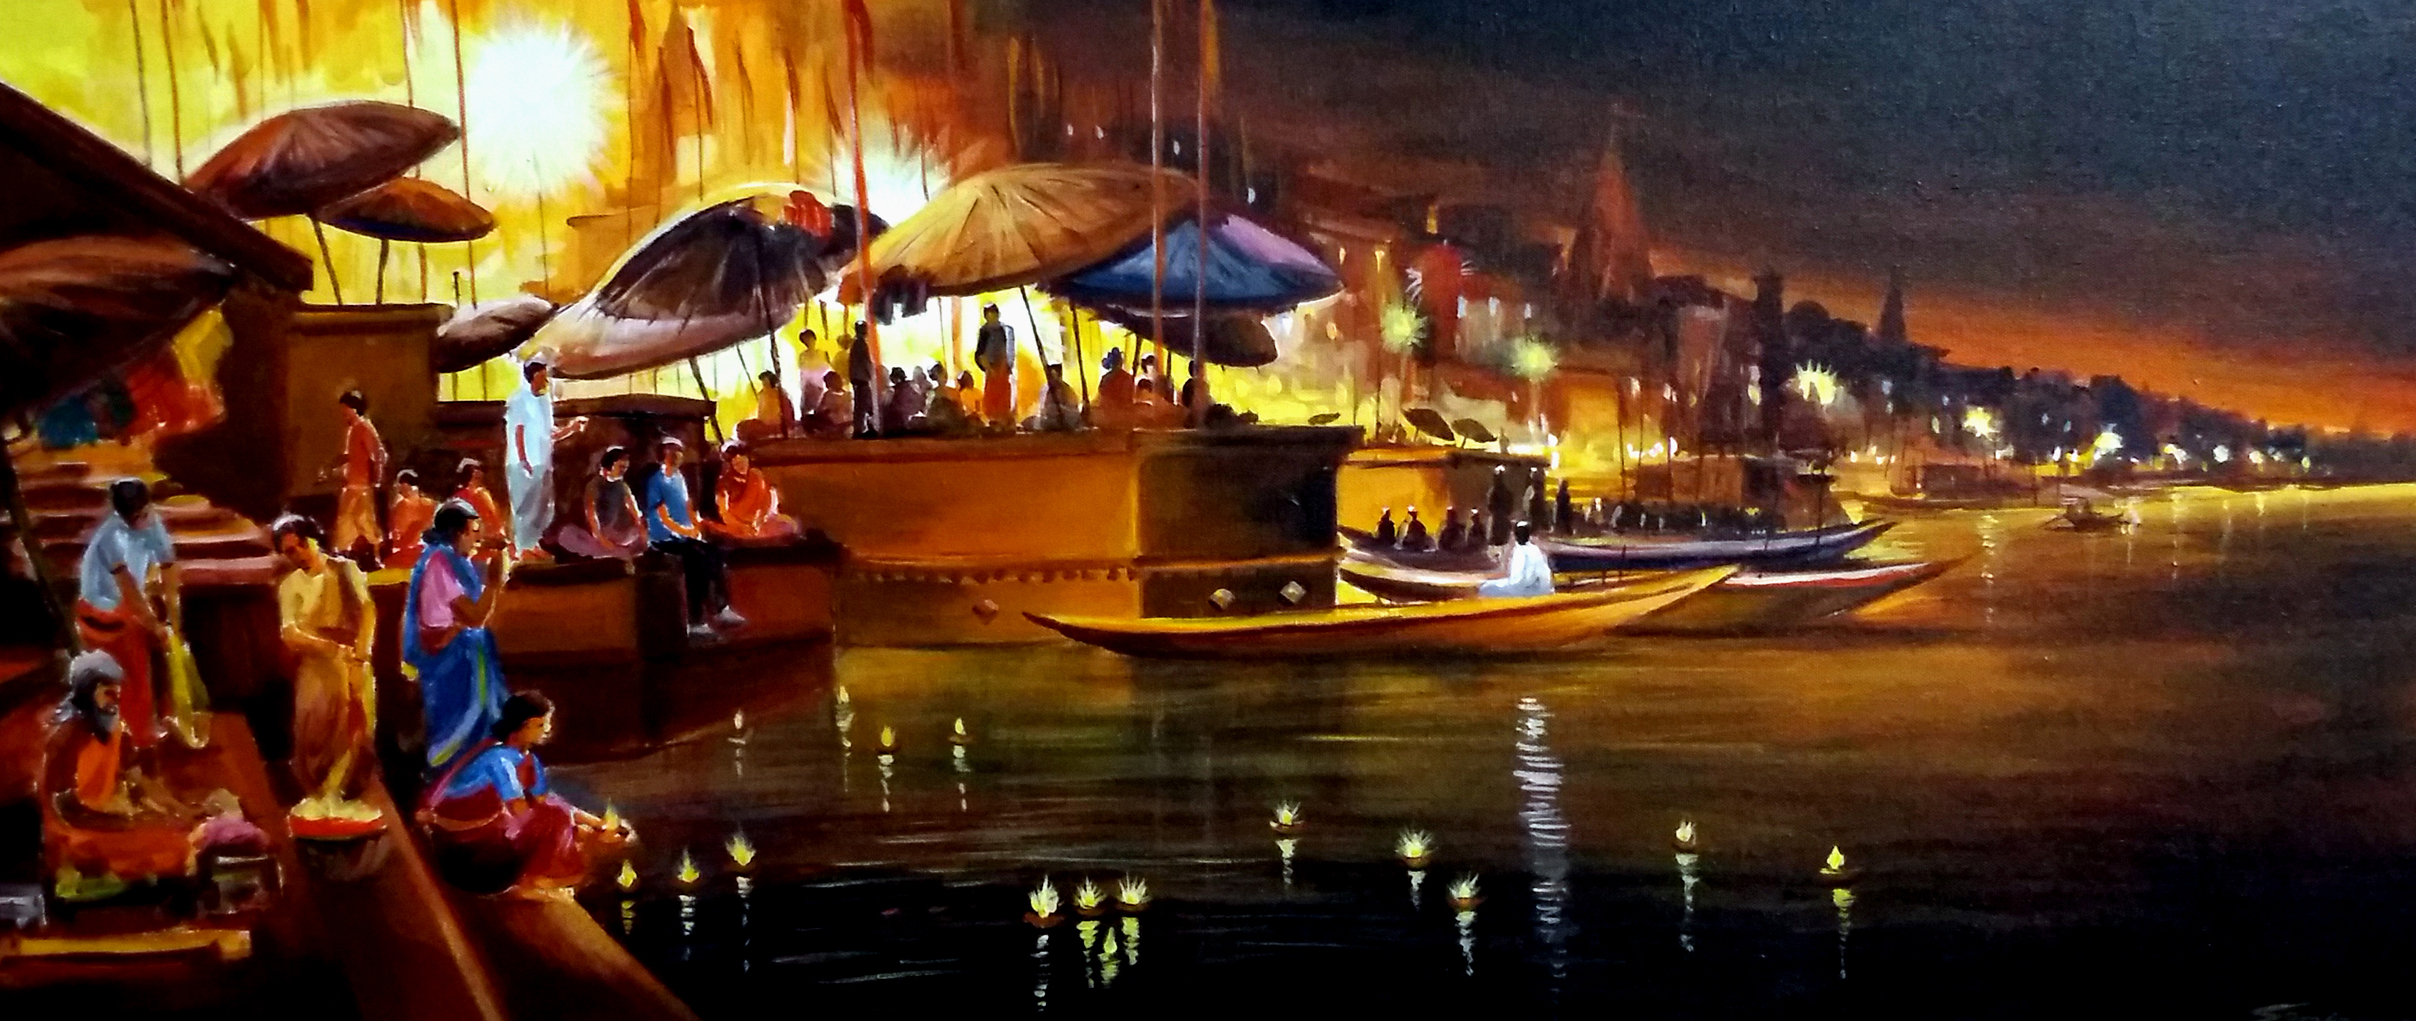 Festival Night at Varansi Ghat 11738